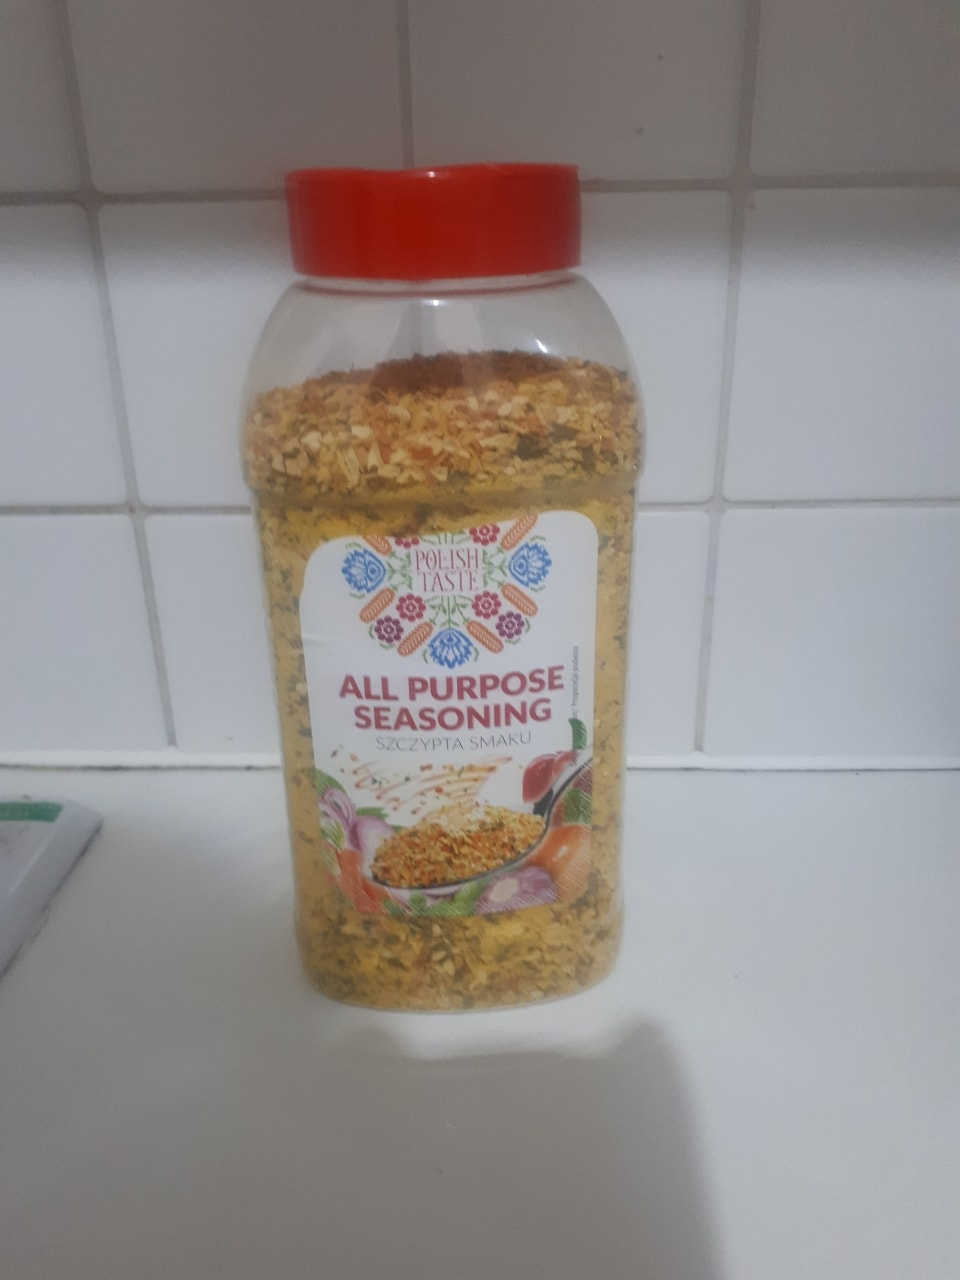 Huge container of polish spices